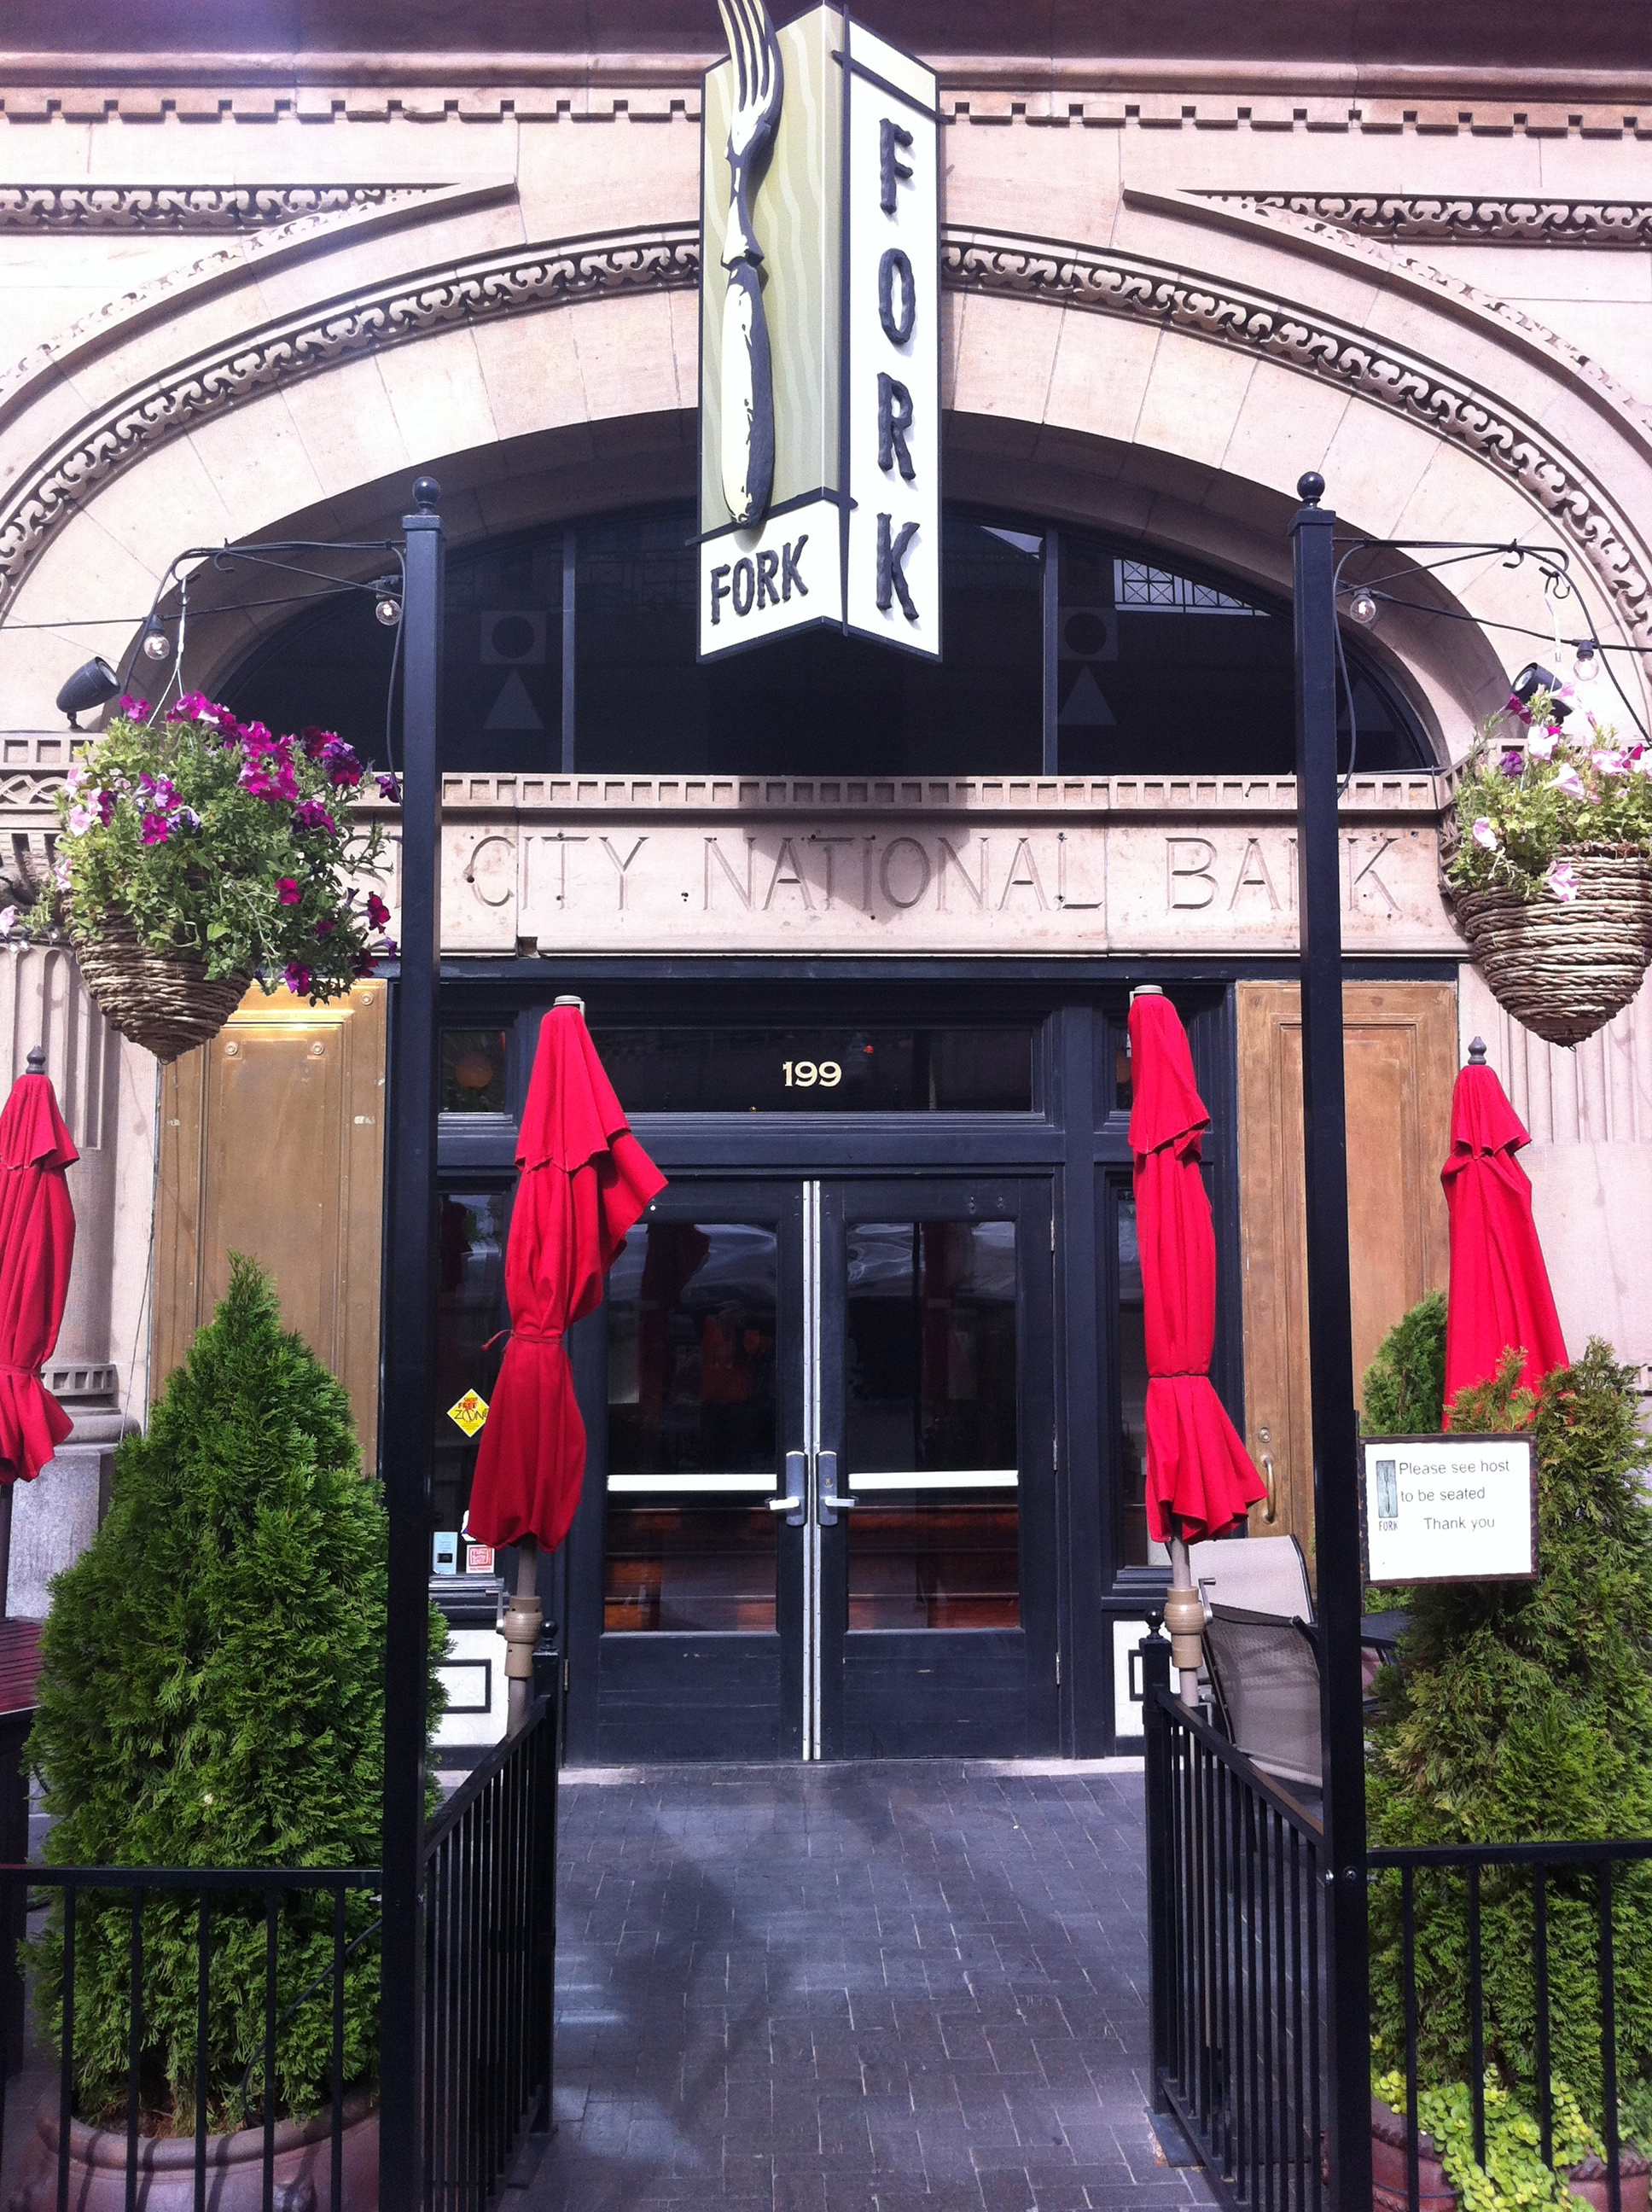 Fork is one of many creative and charming places to dine in downtown Boise.